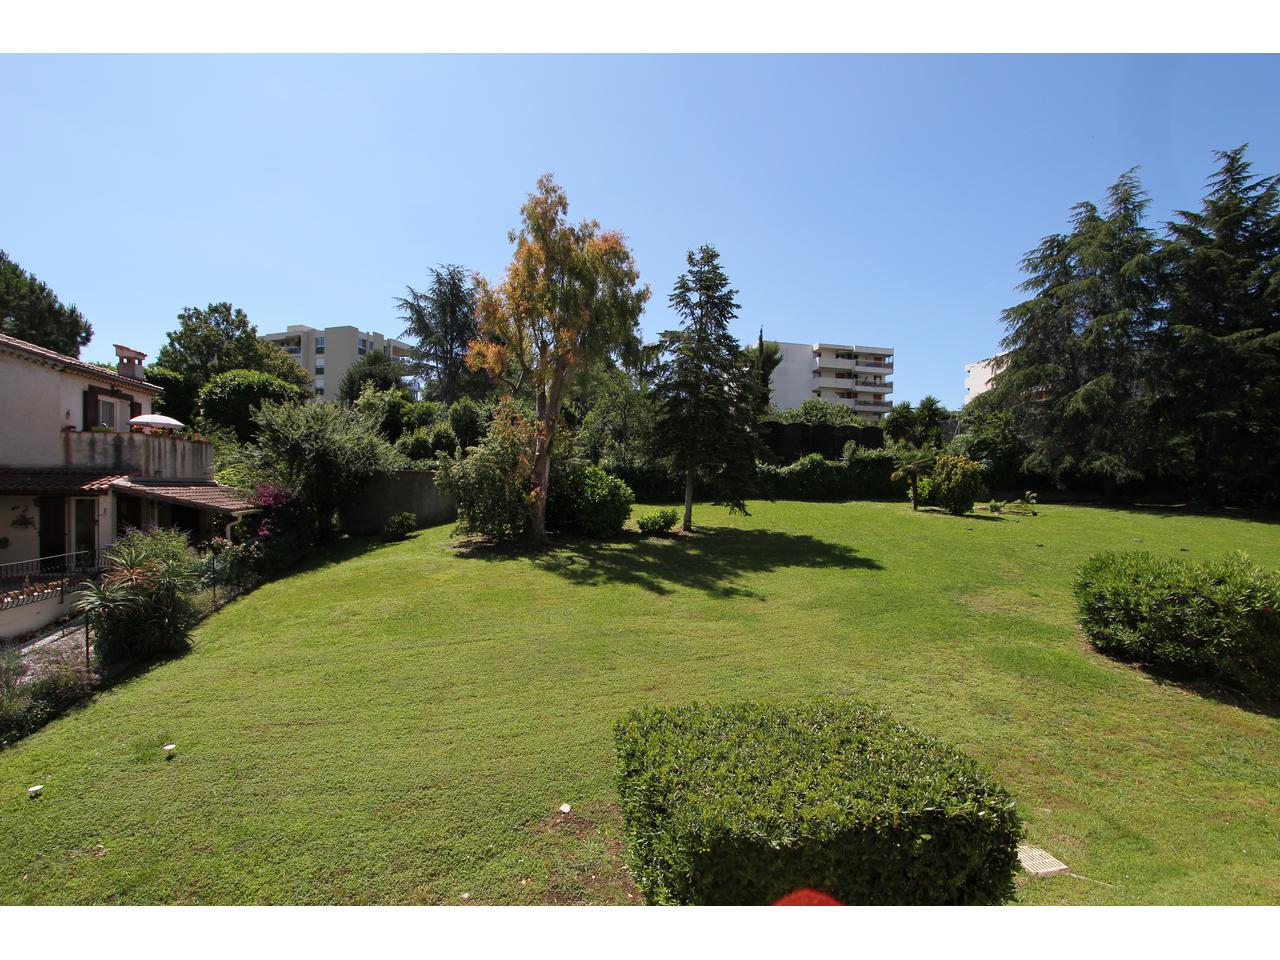 Antibes - 80m² centre - sud - jardin - parking -